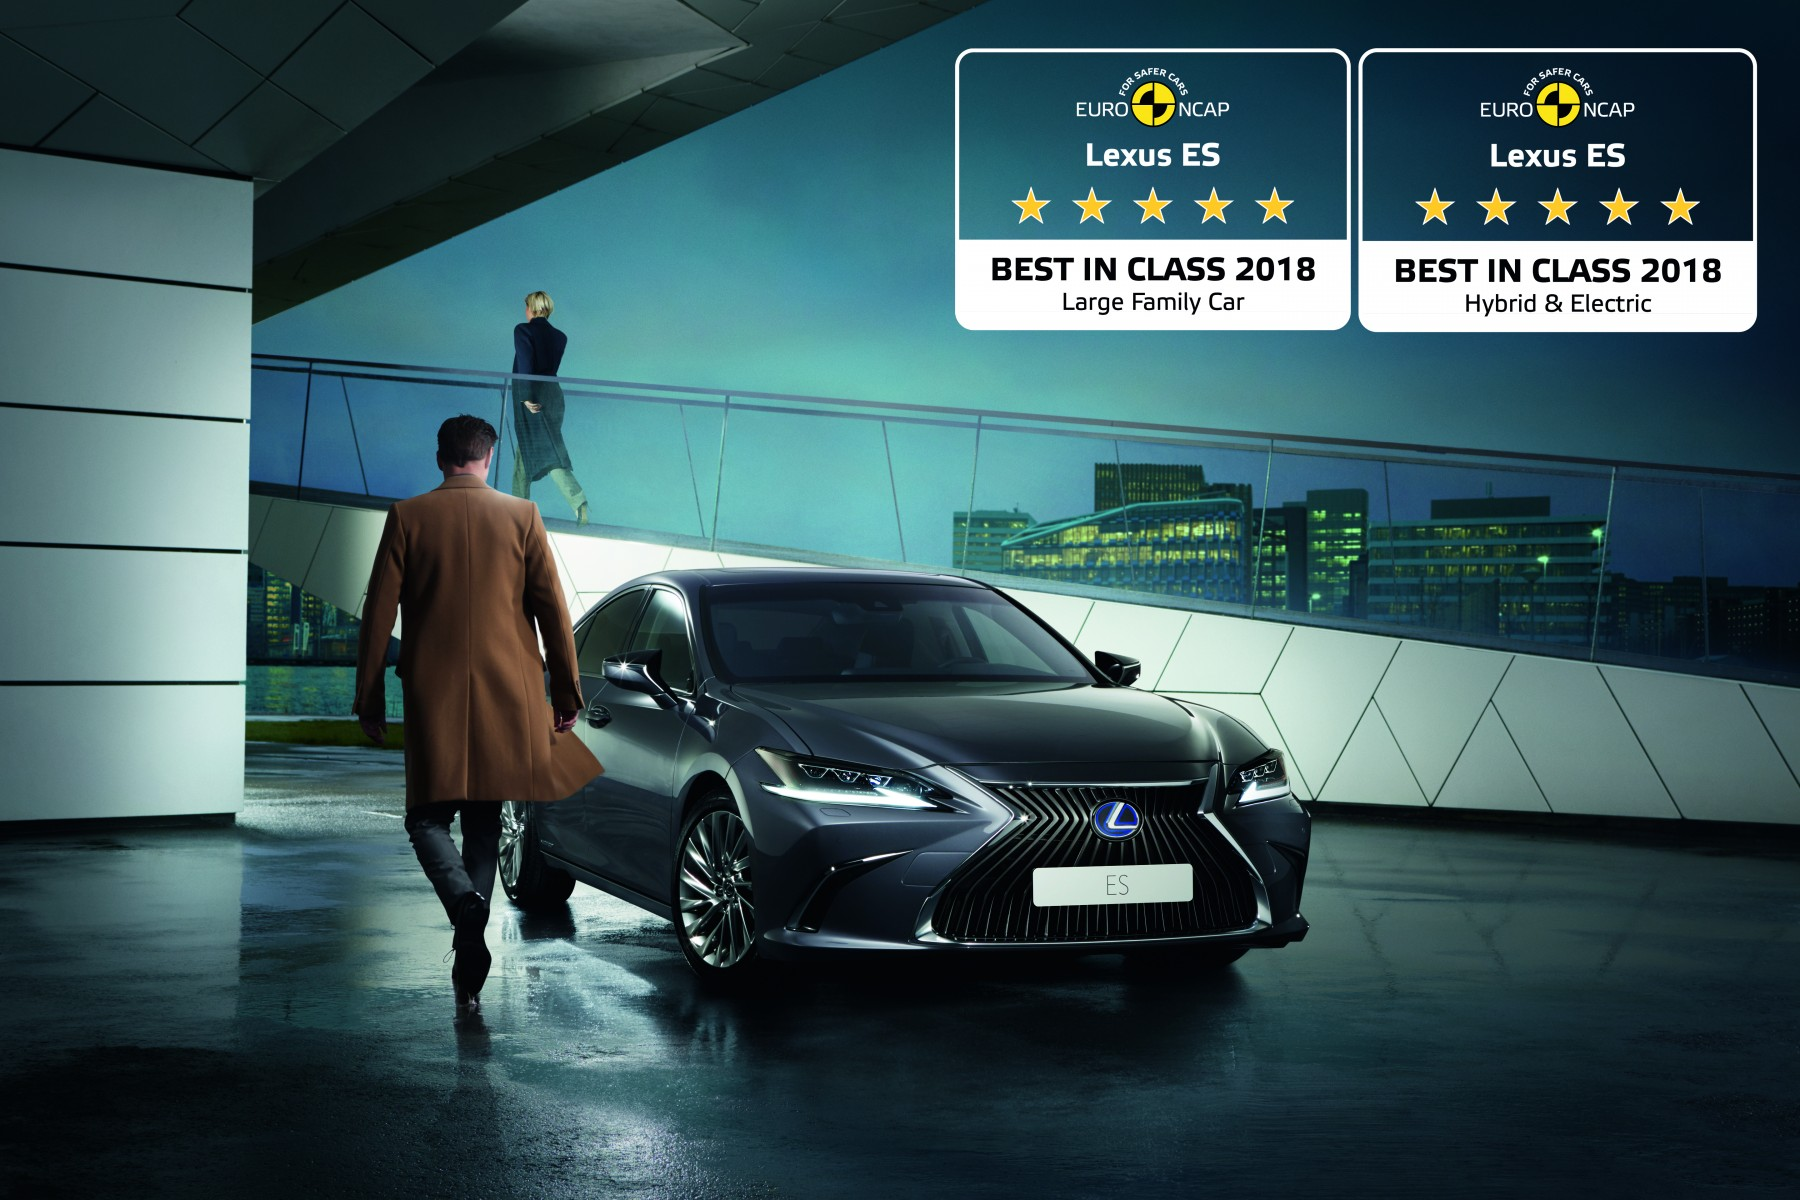 Lexus Electric Car >> All New Lexus Es Is Europe S Safest Large Family Car And